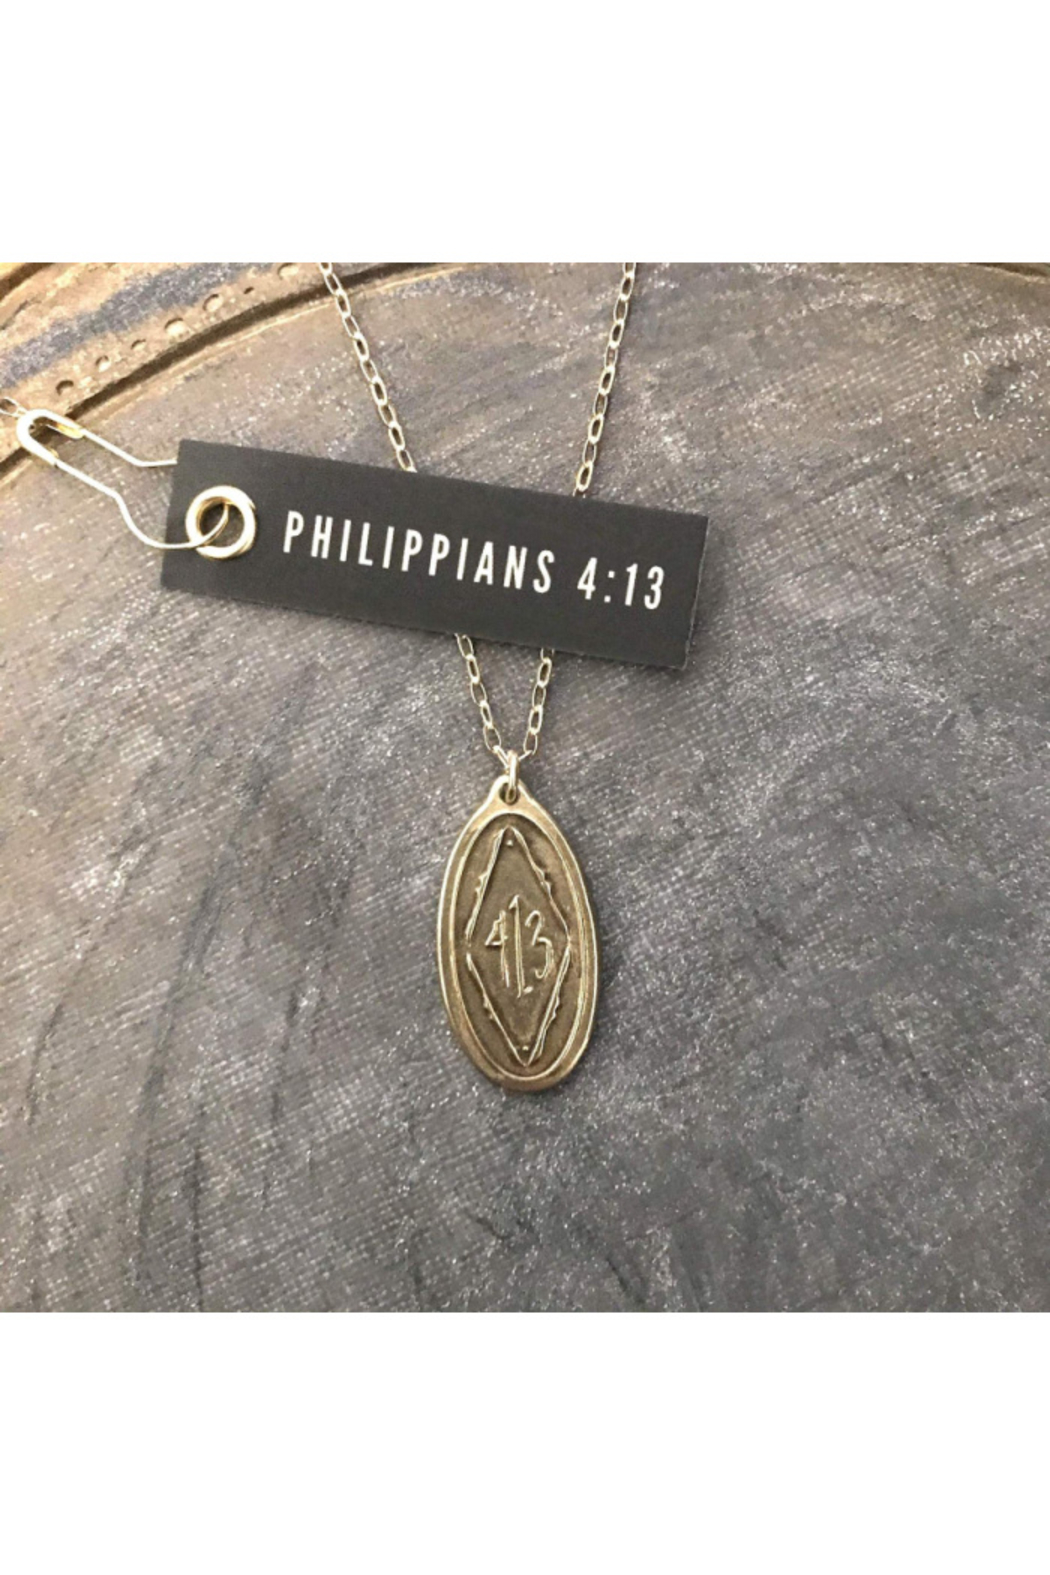 MADISON STERLING JEWELRY PHILIPPIANS 4:13 PENDANT NECKLACE - Front Cropped Image